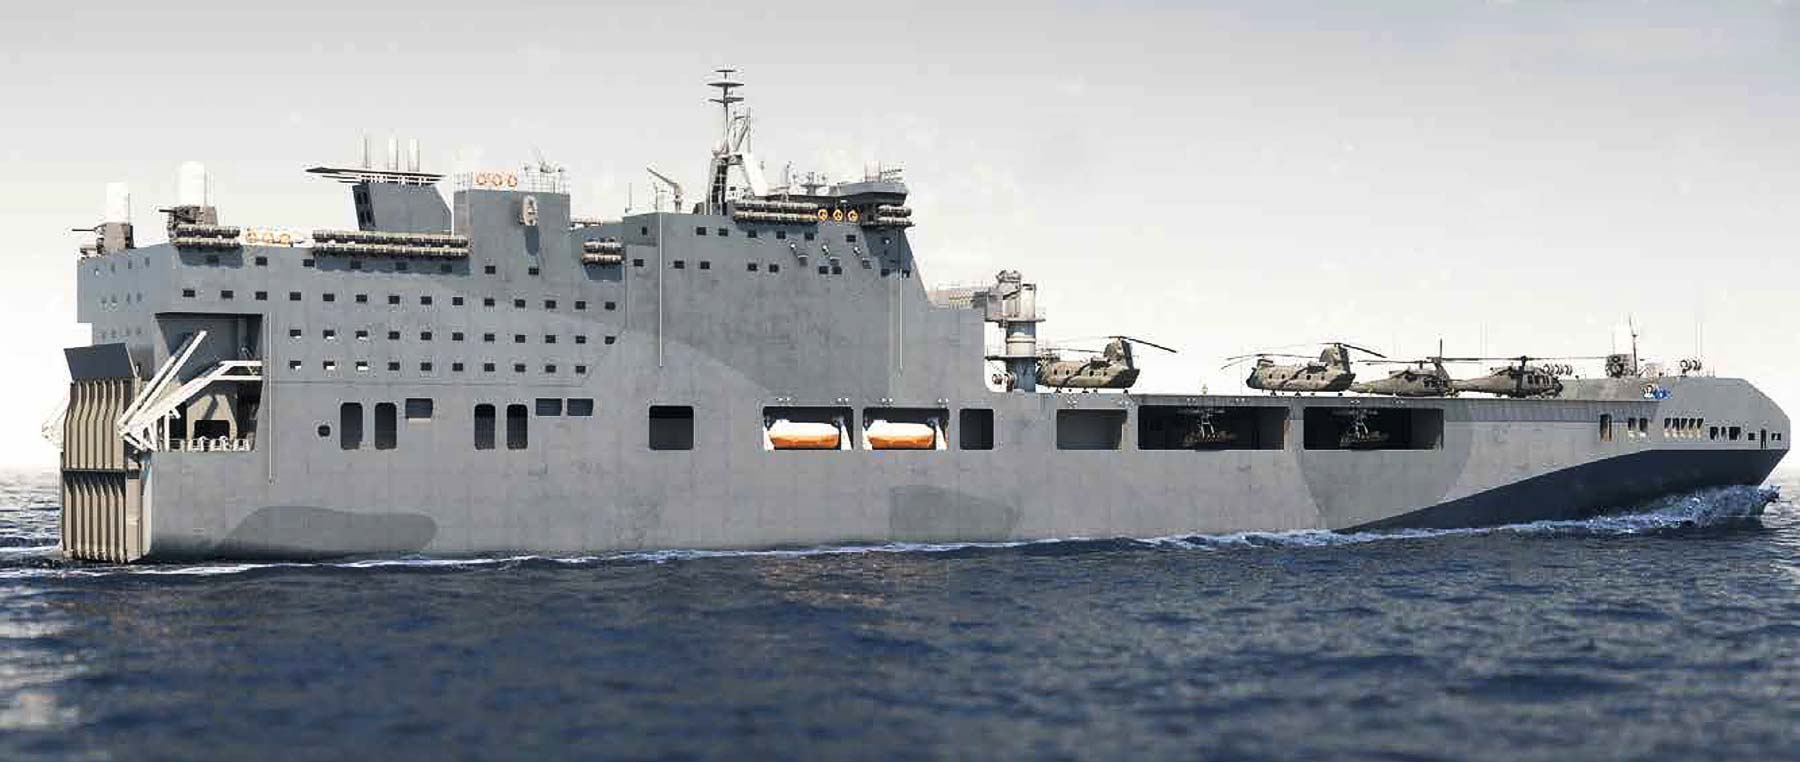 UK says: Its plane carrying warship strike bunch is prepared to send. China's now observing